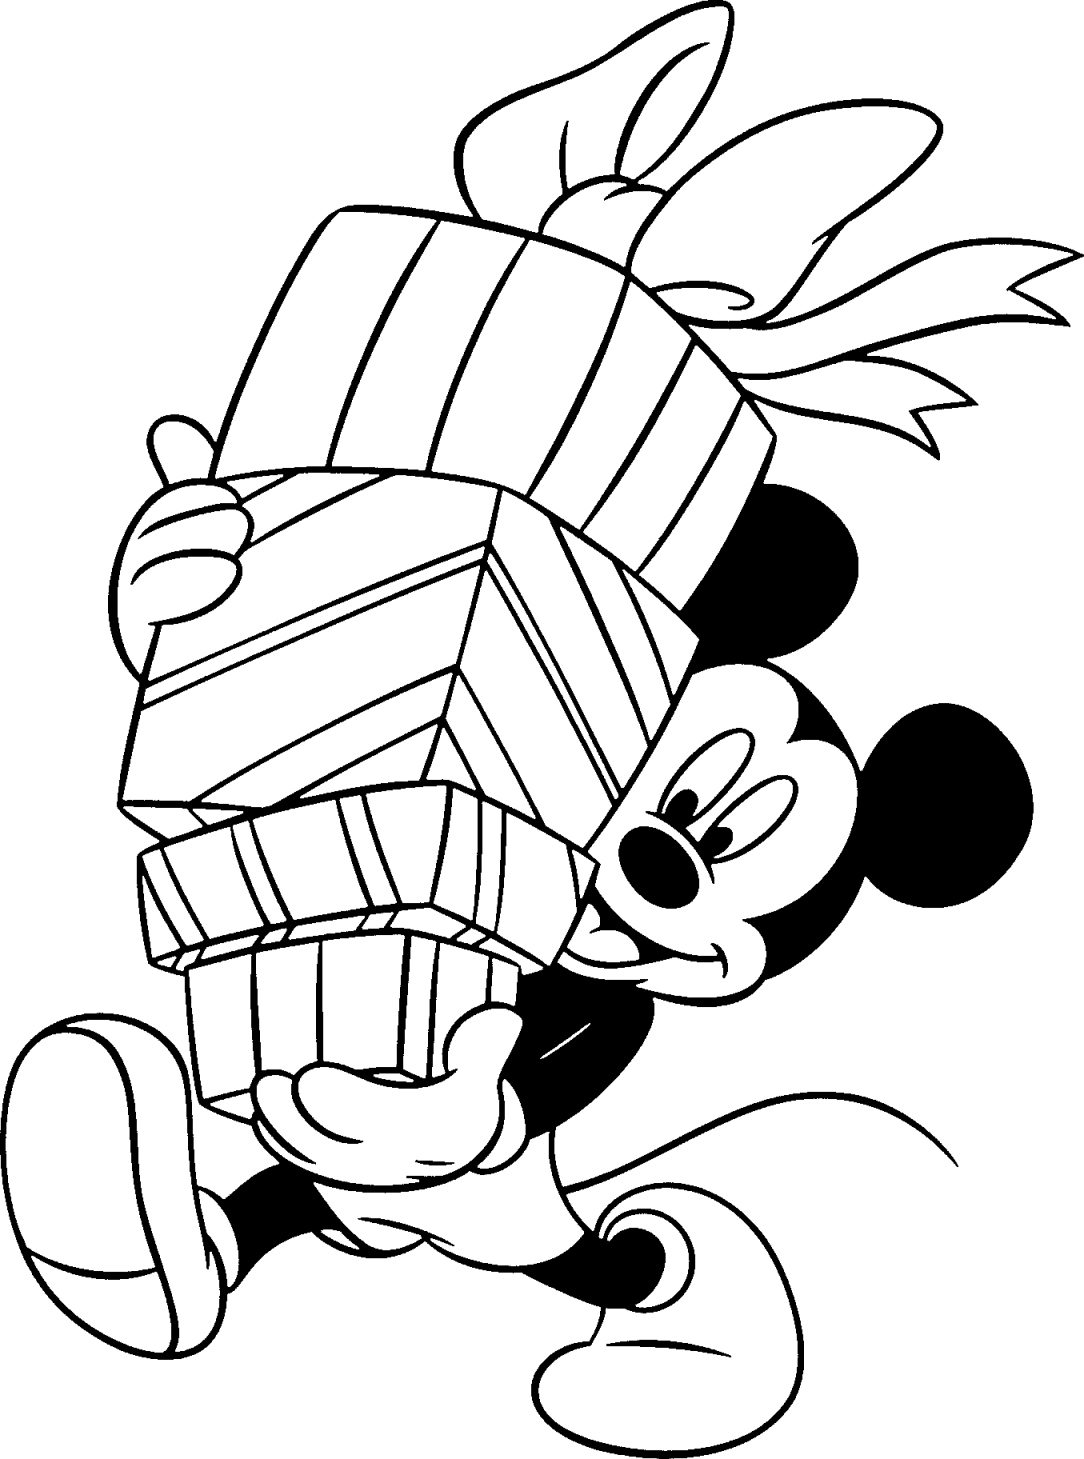 mickey mouse 1st birthday coloring pages ; mickey-mouse-1st-birthday-coloring-pages-lovely-mickey-mouse-coloring-pages-free-606-cartoons-coloring-coloringace-of-mickey-mouse-1st-birthday-coloring-pages